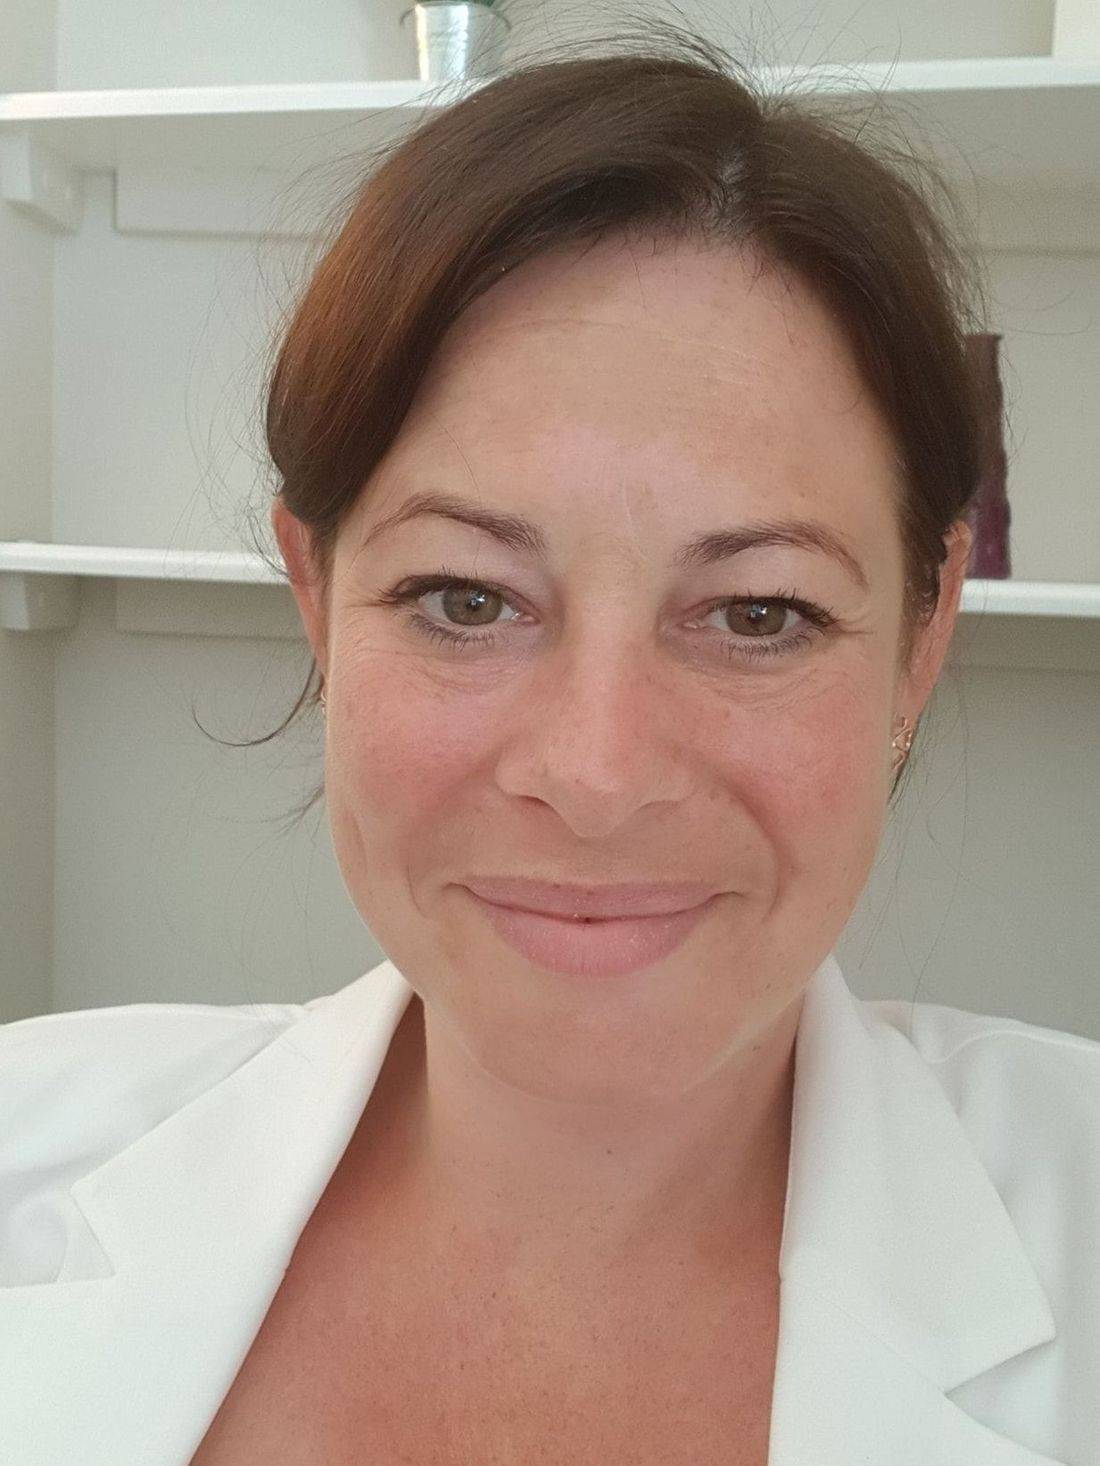 Catherine Parker, owner and therapist of Catherine Parker Therapy, Leeds, West Yorkshire, UK